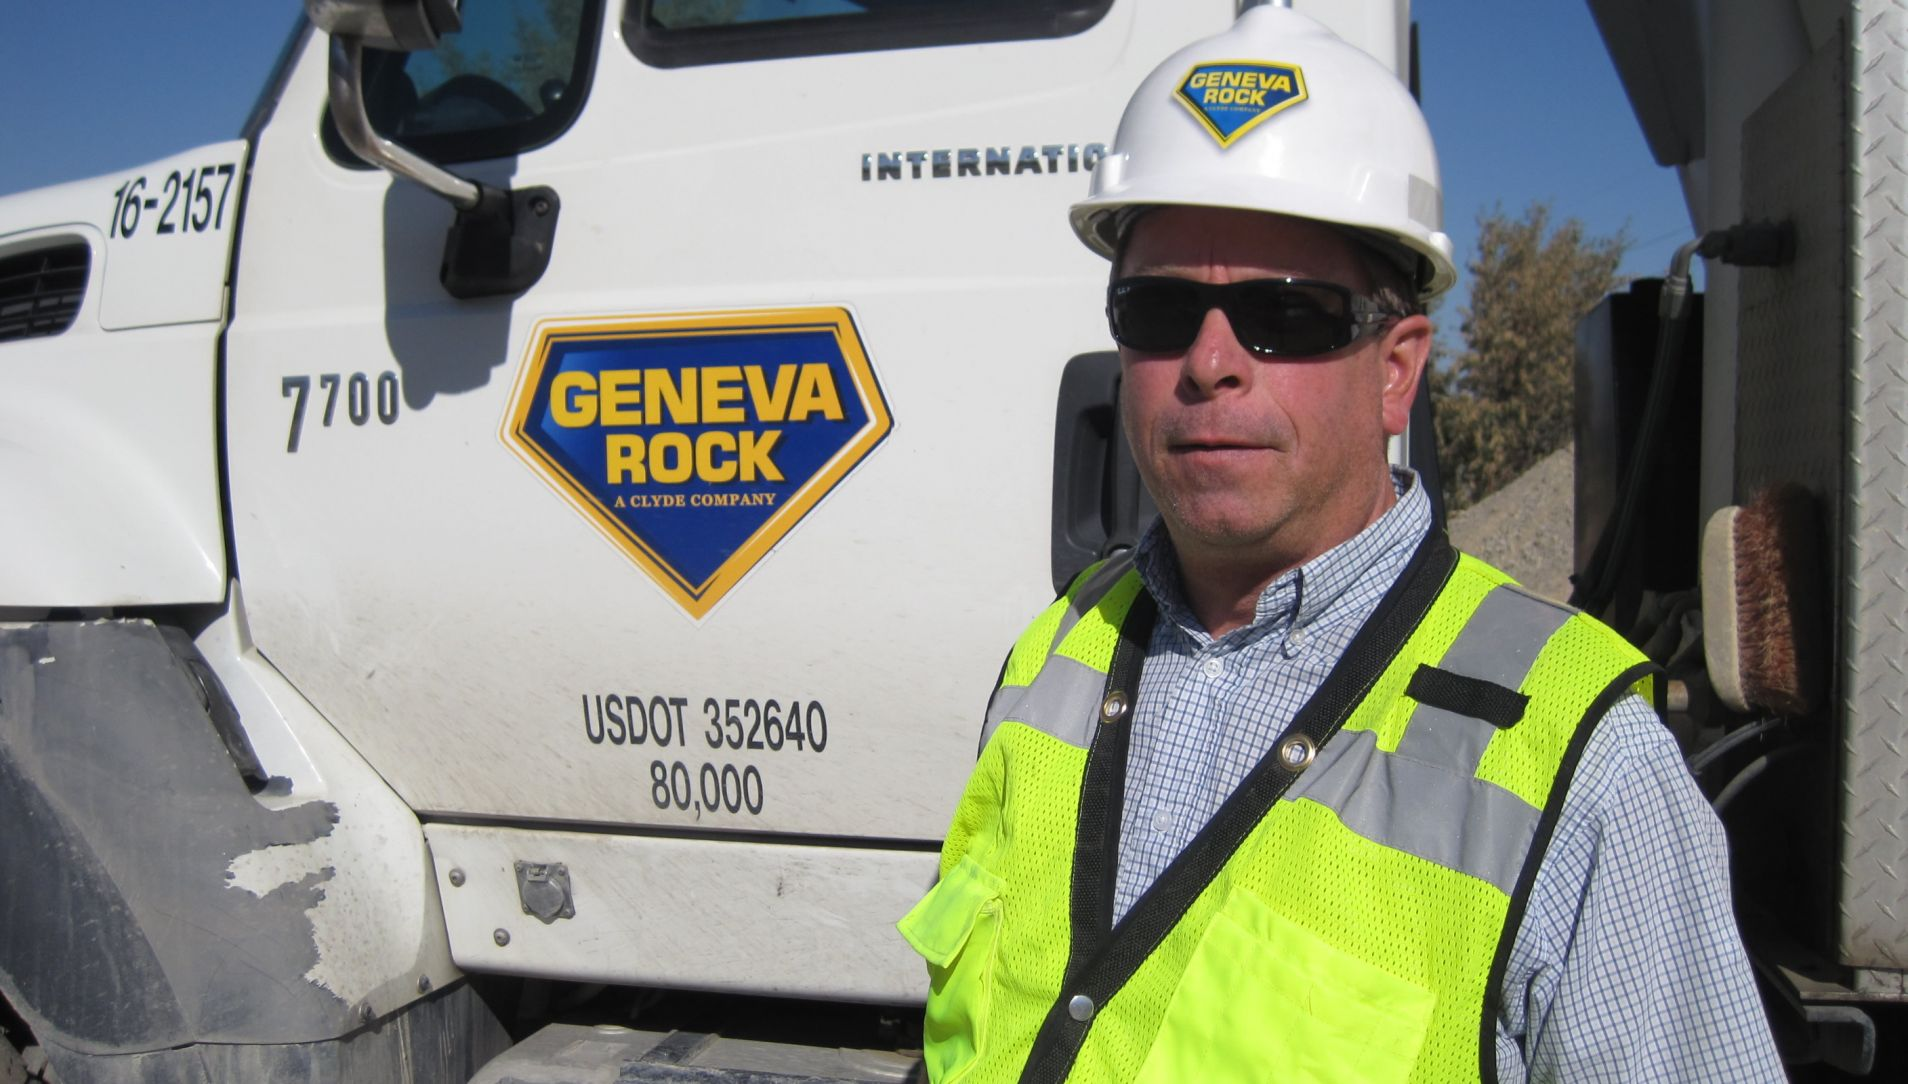 Geneva Rock Driver Recognized as Driver of the Month